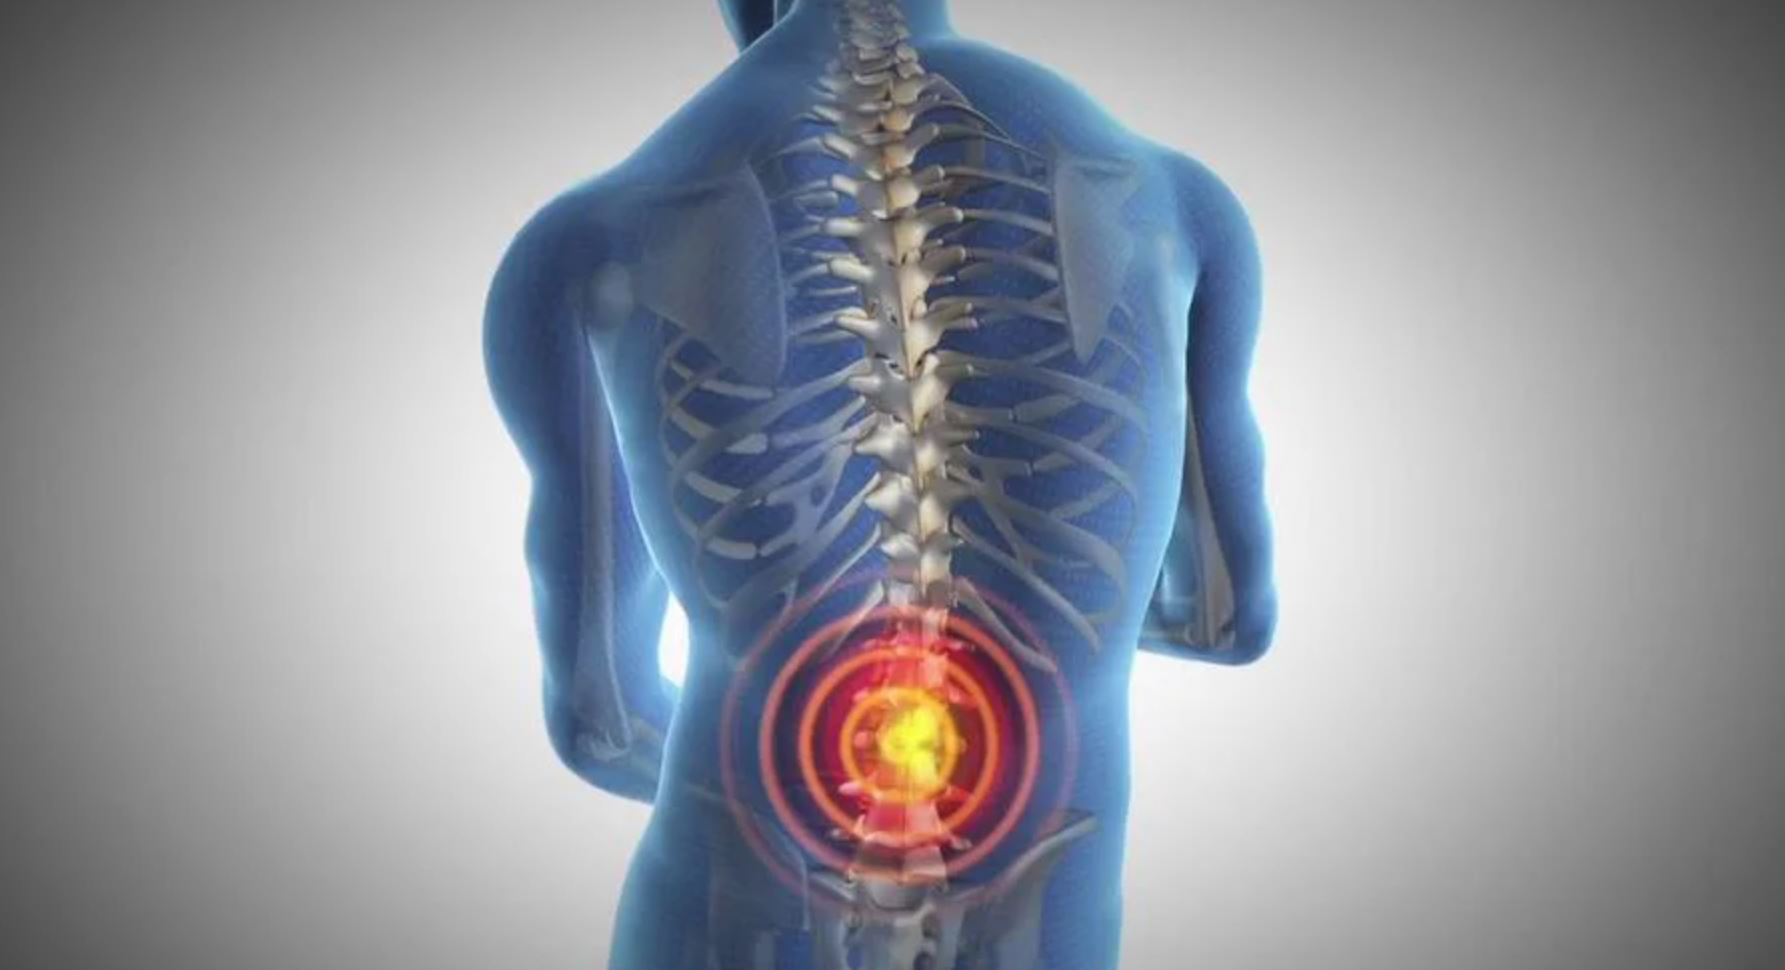 Tips On Living With Severe Back Pain